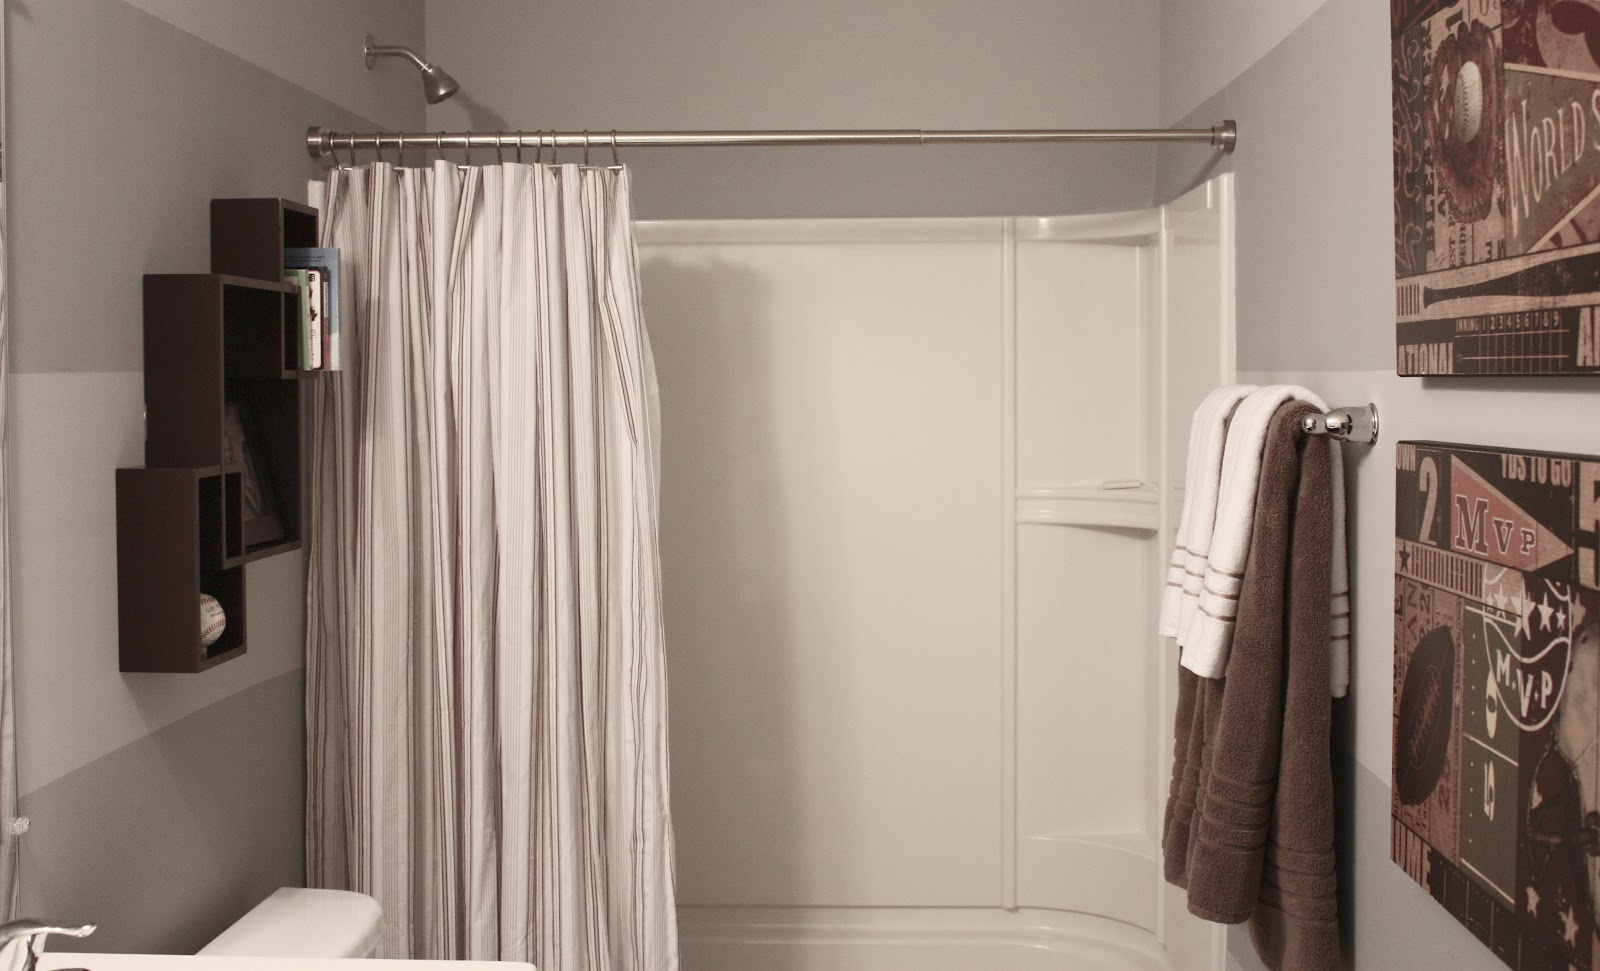 The Yellow Cape Cod Boy 39 S Bathroom Reveal Using Two Shower Curtains